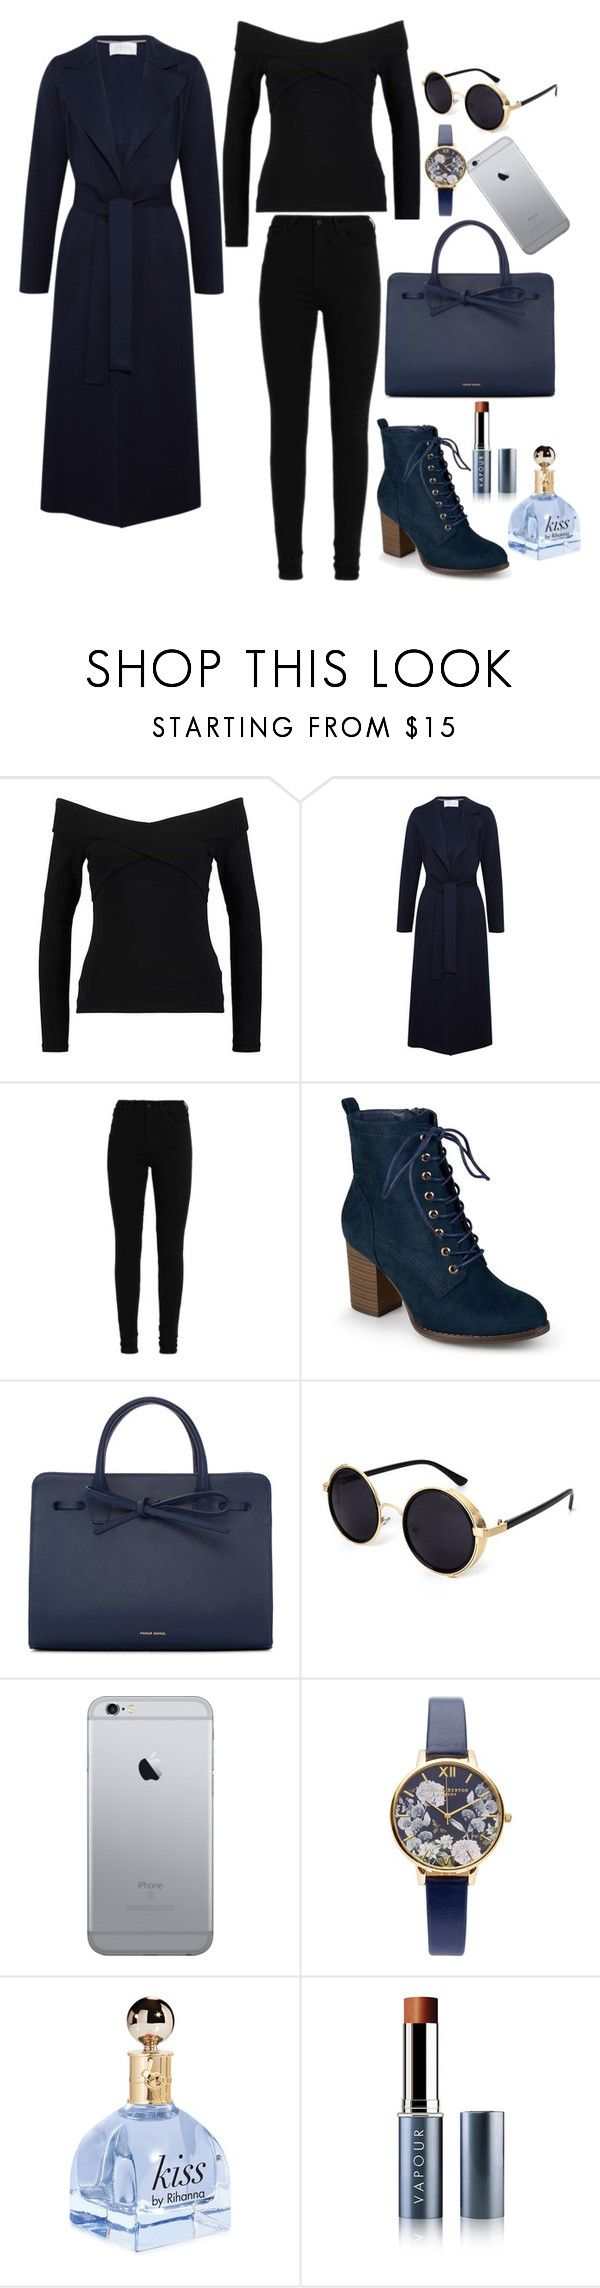 Bleu by amystyles-i on Polyvore featuring mode, Harris Wharf London, Journee Collection, Mansur Gavriel, Olivia Burton and Vapour Organic Beauty